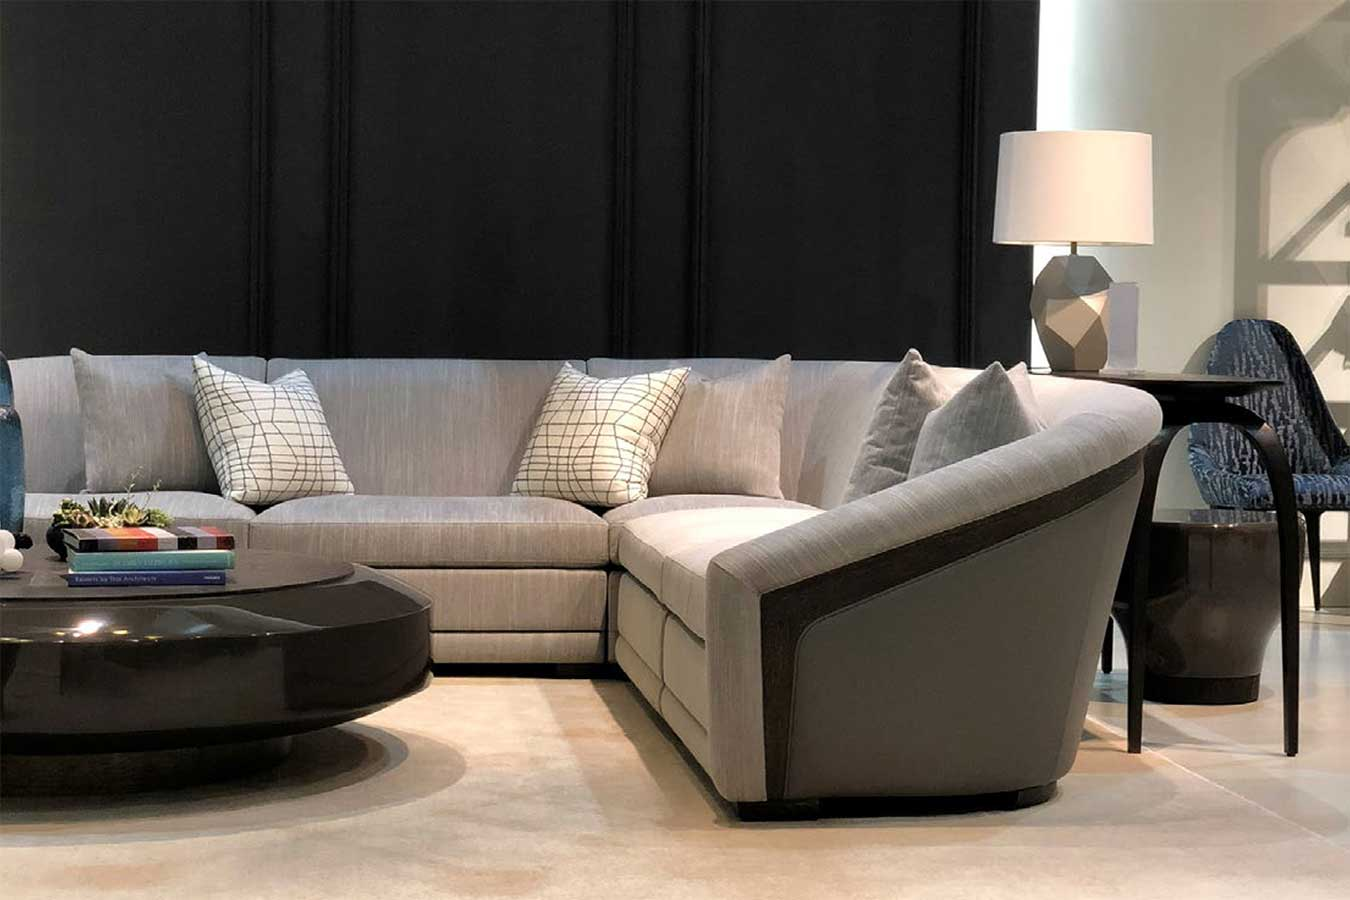 Xander Noori Living Room | Contemporary Modern Luxury Exclusive Designer Handcrafted Furniture | Sandton Johannesburg